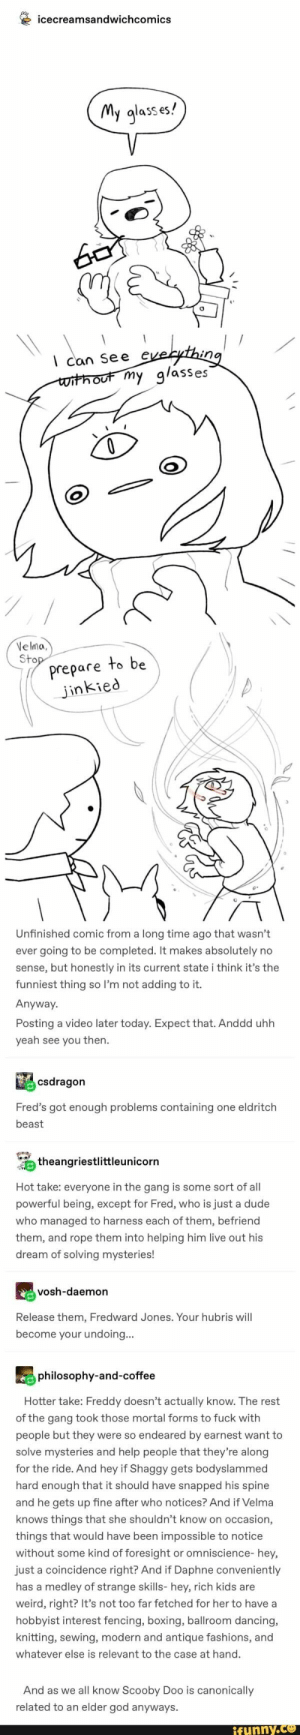 Q icecreamsandwichcomics – popular memes on the site iFunny.co #scoobydoo #tvshows #tumblr #tumblrpost #scoobydoo #scoobygang #icecreamsandwichcomics #pic: icecreamsandwichcomics  My glass es!  velytng  Can See  without my g/asses  VeIma,  Stop  Prepare to be  jinkied  Unfinished comic from a long time ago that wasn't  ever going to be completed. It makes absolutely no  sense, but honestly in its current state i think it's the  funniest thing so I'm not adding to it.  Anyway  Posting a video later today. Expect that. Anddd uhh  yeah see you then  csdragon  Fred's got enough problems containing one eldritch  beast  theangriestlittleunicorn  Hot take: everyone in the gang is some sort of all  powerful being, except for Fred, who is just a dude  who managed to harness each of them, befriend  them, and rope them into helping him live out his  dream of solving mysteries!  vosh-daemon  Release them, Fredward Jones. Your hubris will  become your undoing...  philosophy-and-coffee  Hotter take: Freddy doesn't actually know. The rest  of the gang took those mortal forms to fuck with  people but they were so endeared by earnest want to  solve mysteries and help people that they're along  for the ride. And hey if Shaggy gets bodyslammed  hard enough that it should have snapped his spine  and he gets up fine after who notices? And if Velma  knows things that she shouldn't know on occasion,  things that would have been impossible to notice  or omniscience- hey,  without some kind of foresight  just a coincidence right? And if Daphne conveniently  has a medley of strange skills- hey, rich kids are  weird, right? It's not too far fetched for her to have a  hobbyist interest fencing, boxing, ballroom dancing,  knitting, sewing, modern and antique fashions, and  whatever else is relevant to the case at hand.  And as we all know Scooby Doo is canonically  related to an elder god anyways.  ifunny.co Q icecreamsandwichcomics – popular memes on the site iFunny.co #scoobydoo #tvshows #tum